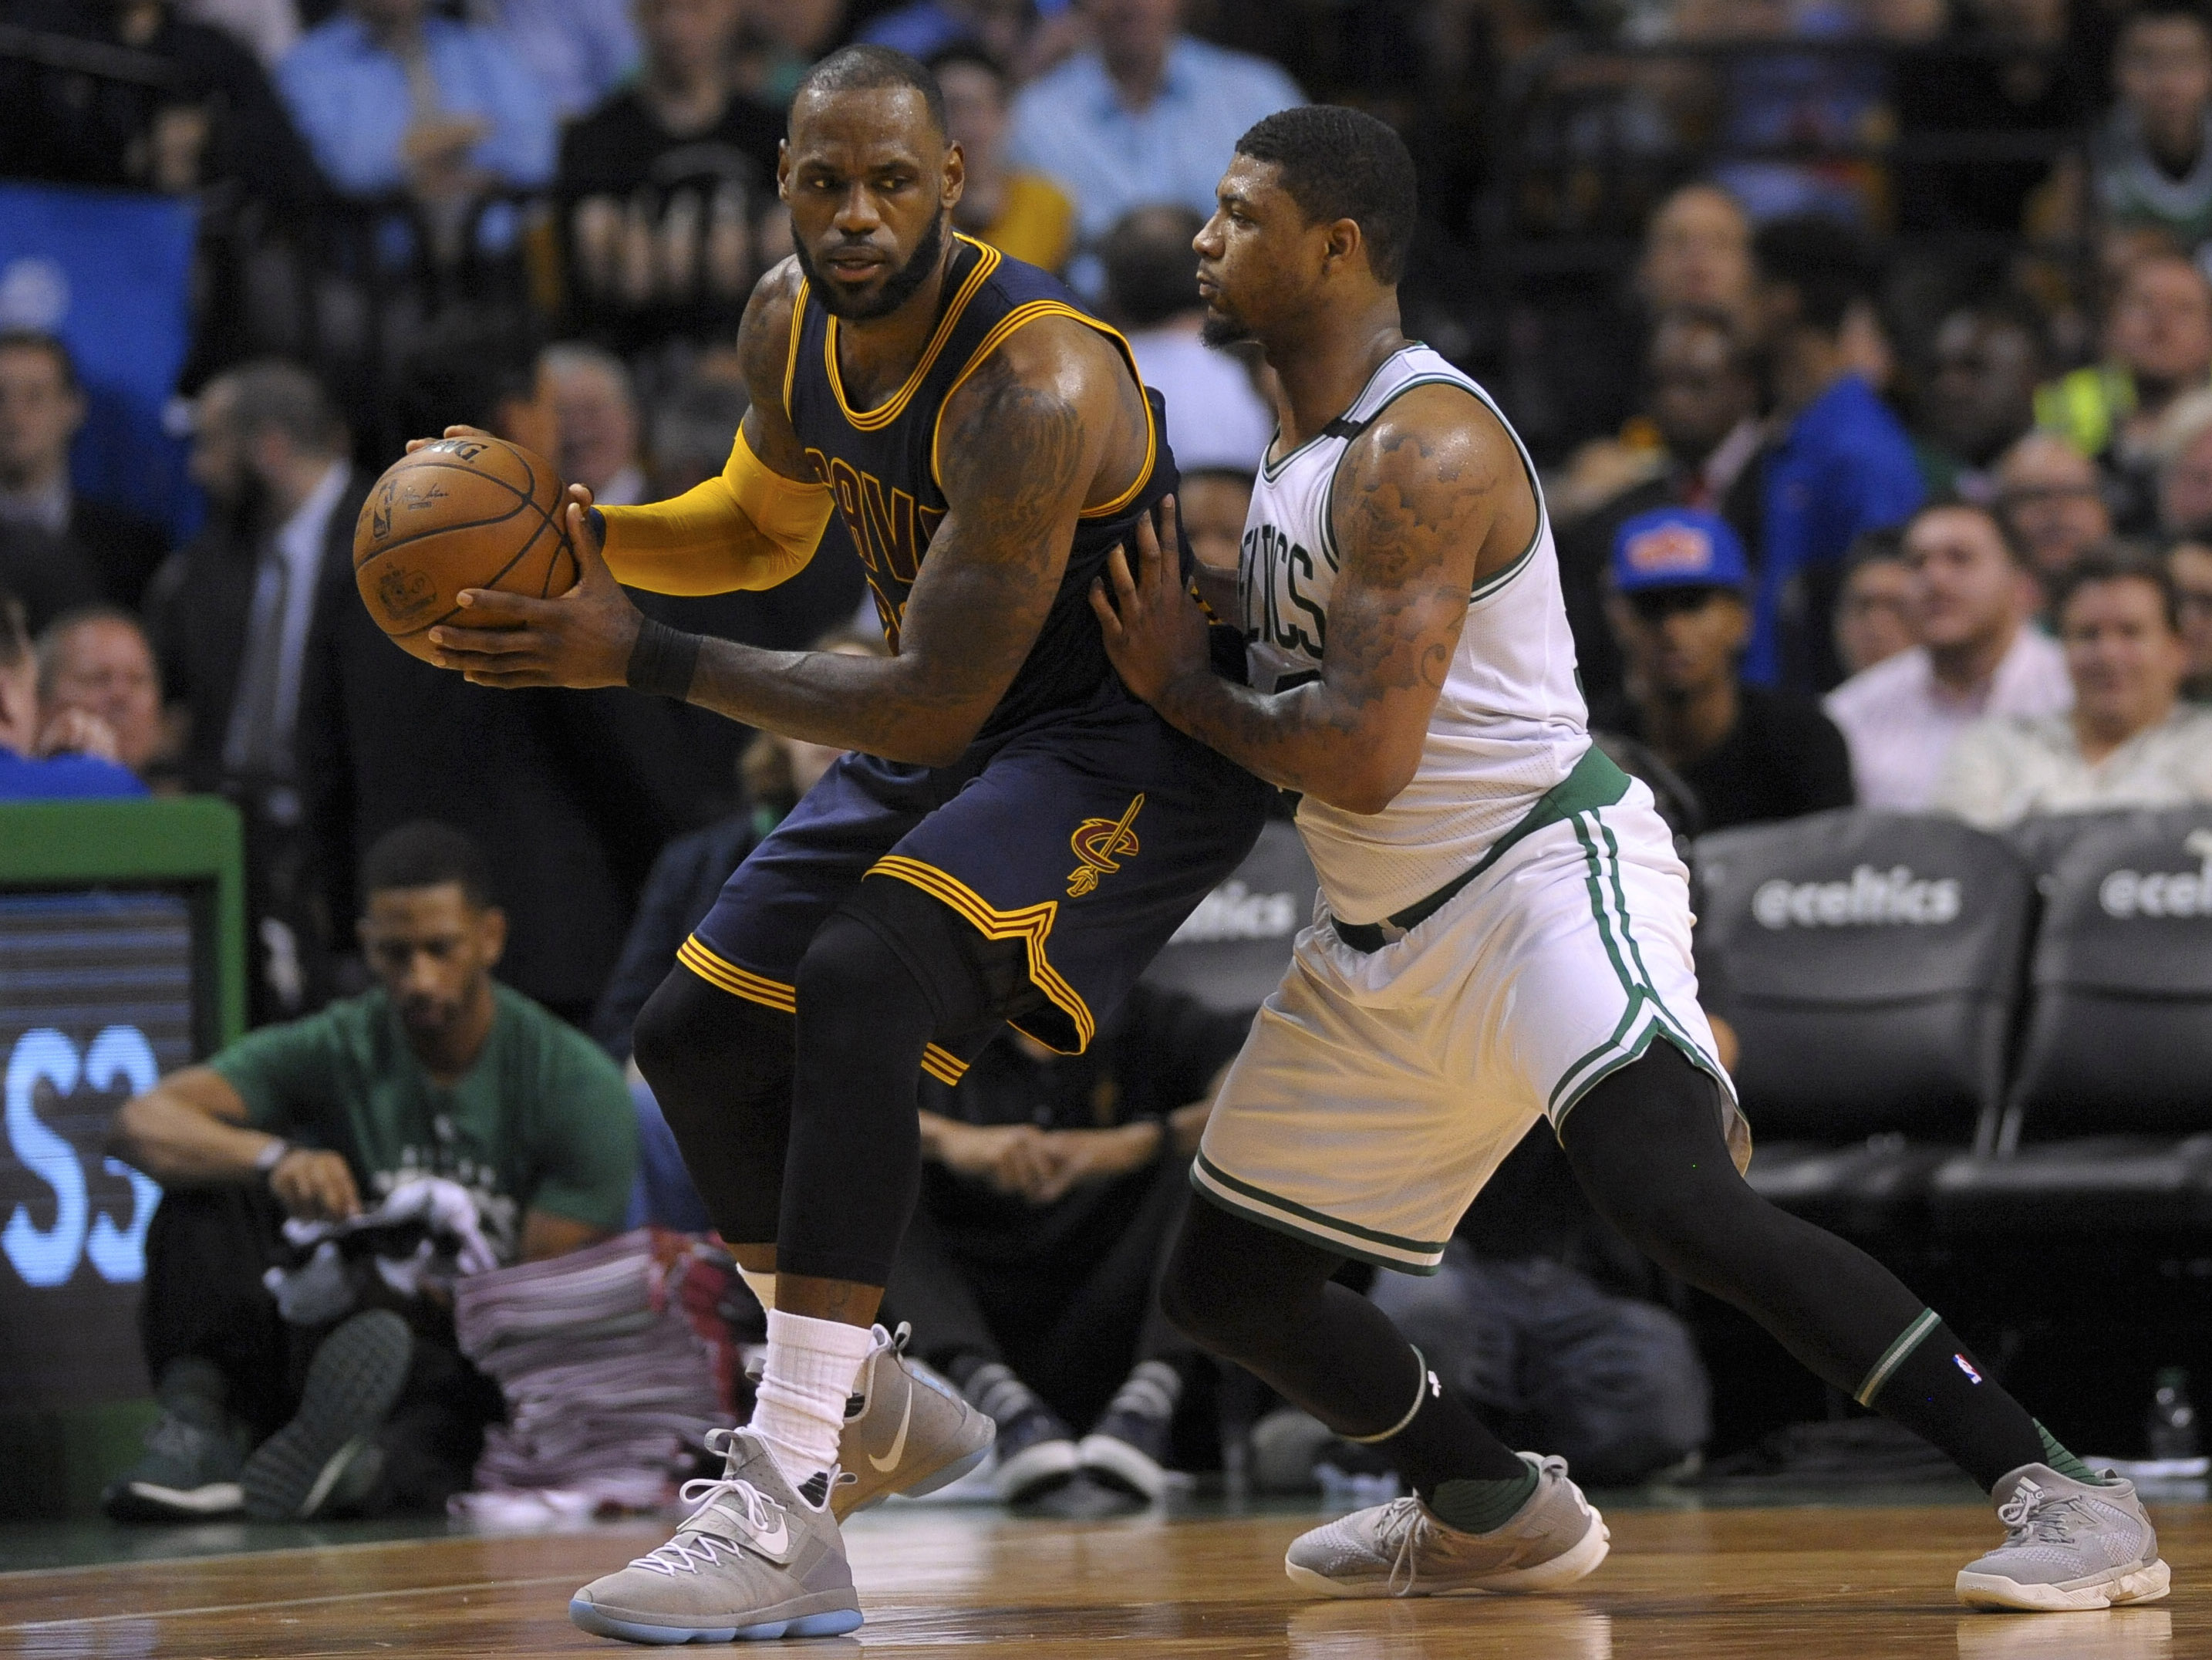 10061729-nba-playoffs-cleveland-cavaliers-at-boston-celtics-1